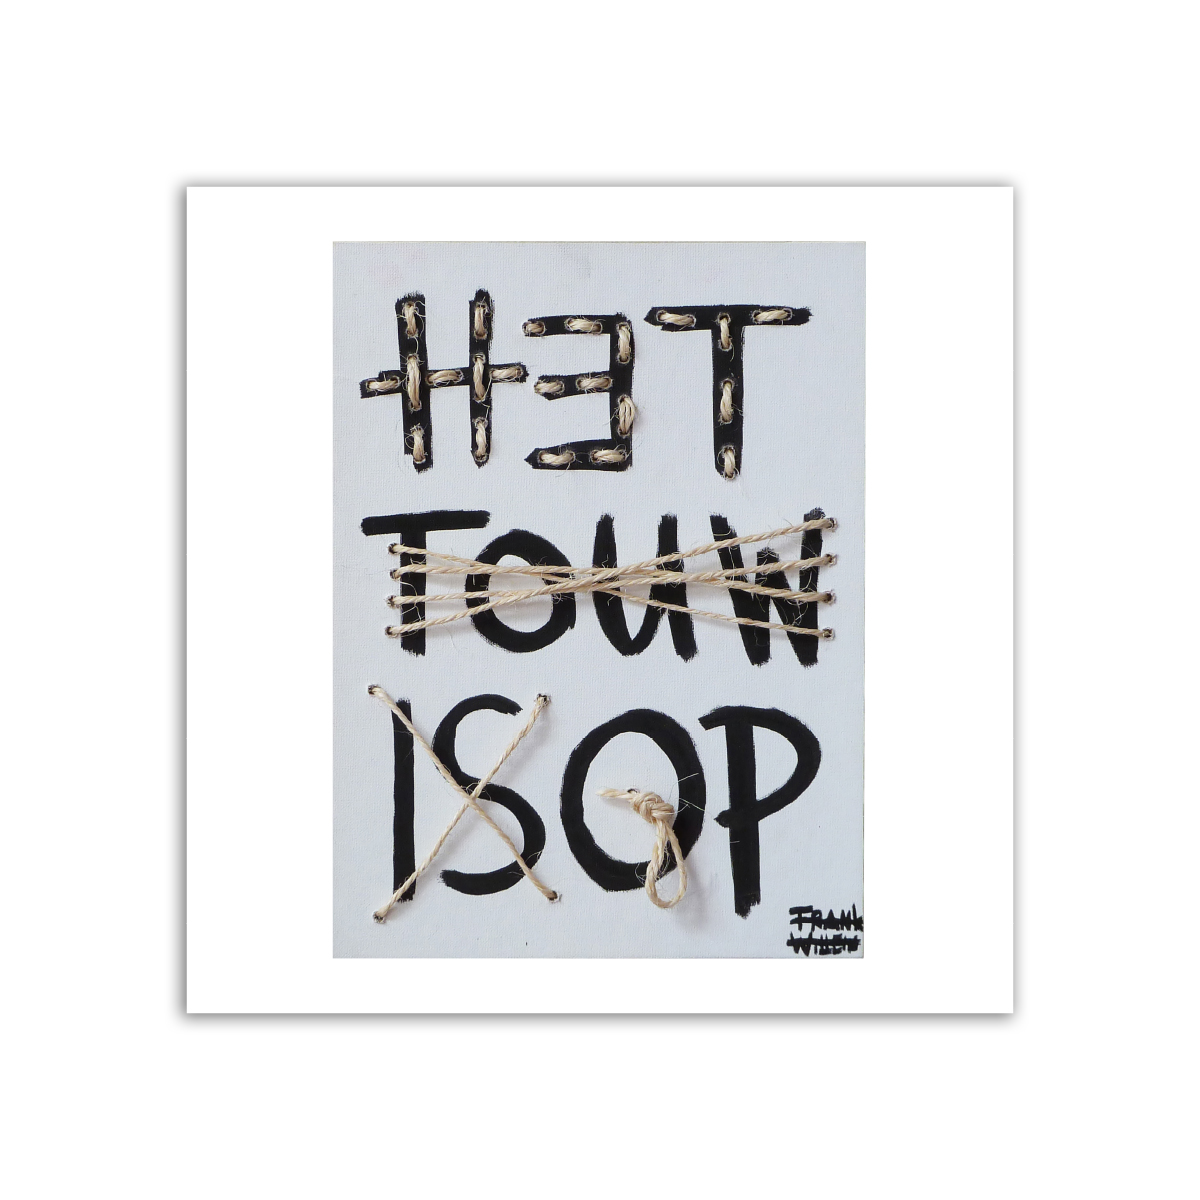 Limited prints - HET TOUW IS OP - Frank Willems